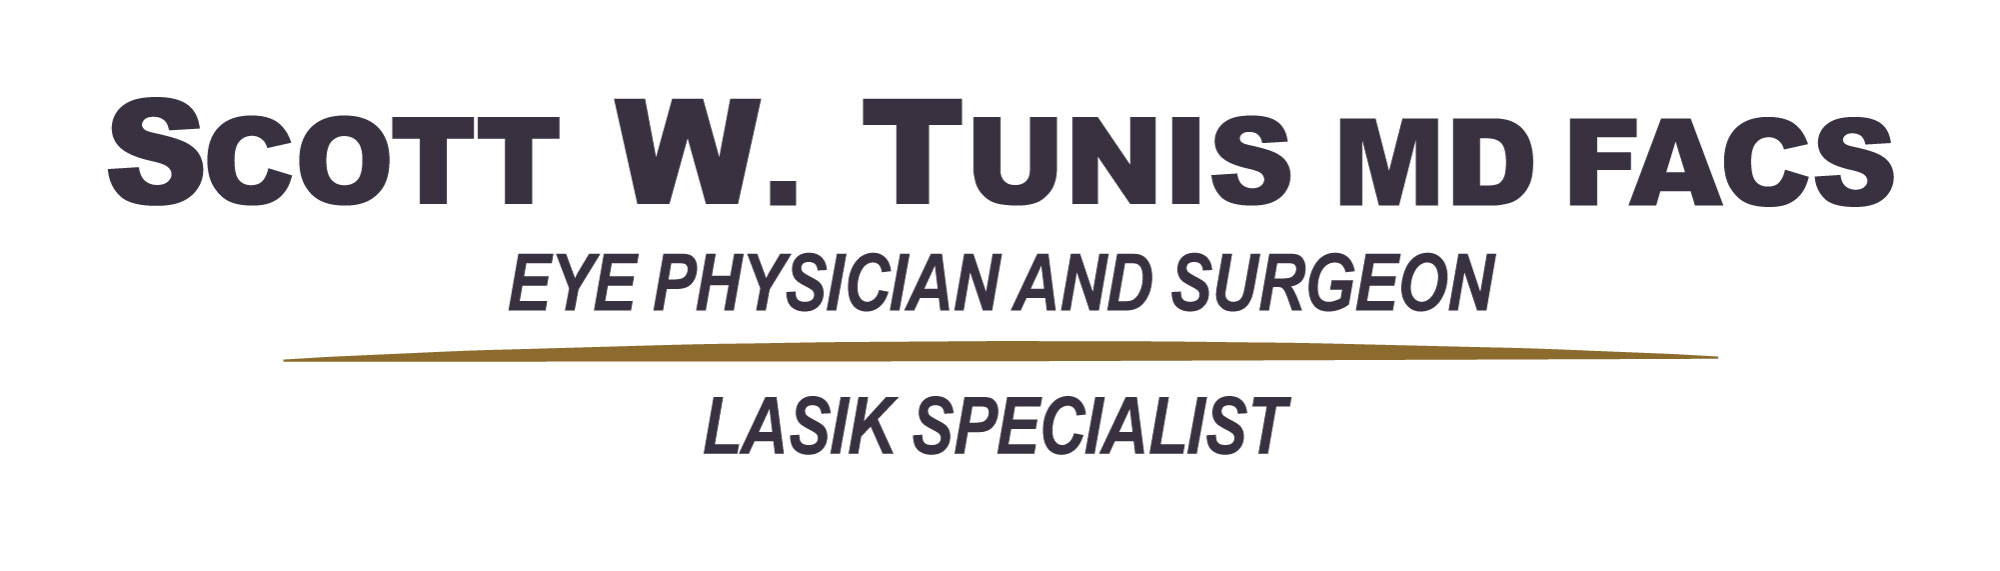 Scott W. Tunis MD FACS reviews | Healthcare at 1001 Military Cutoff Road - Wilmington NC